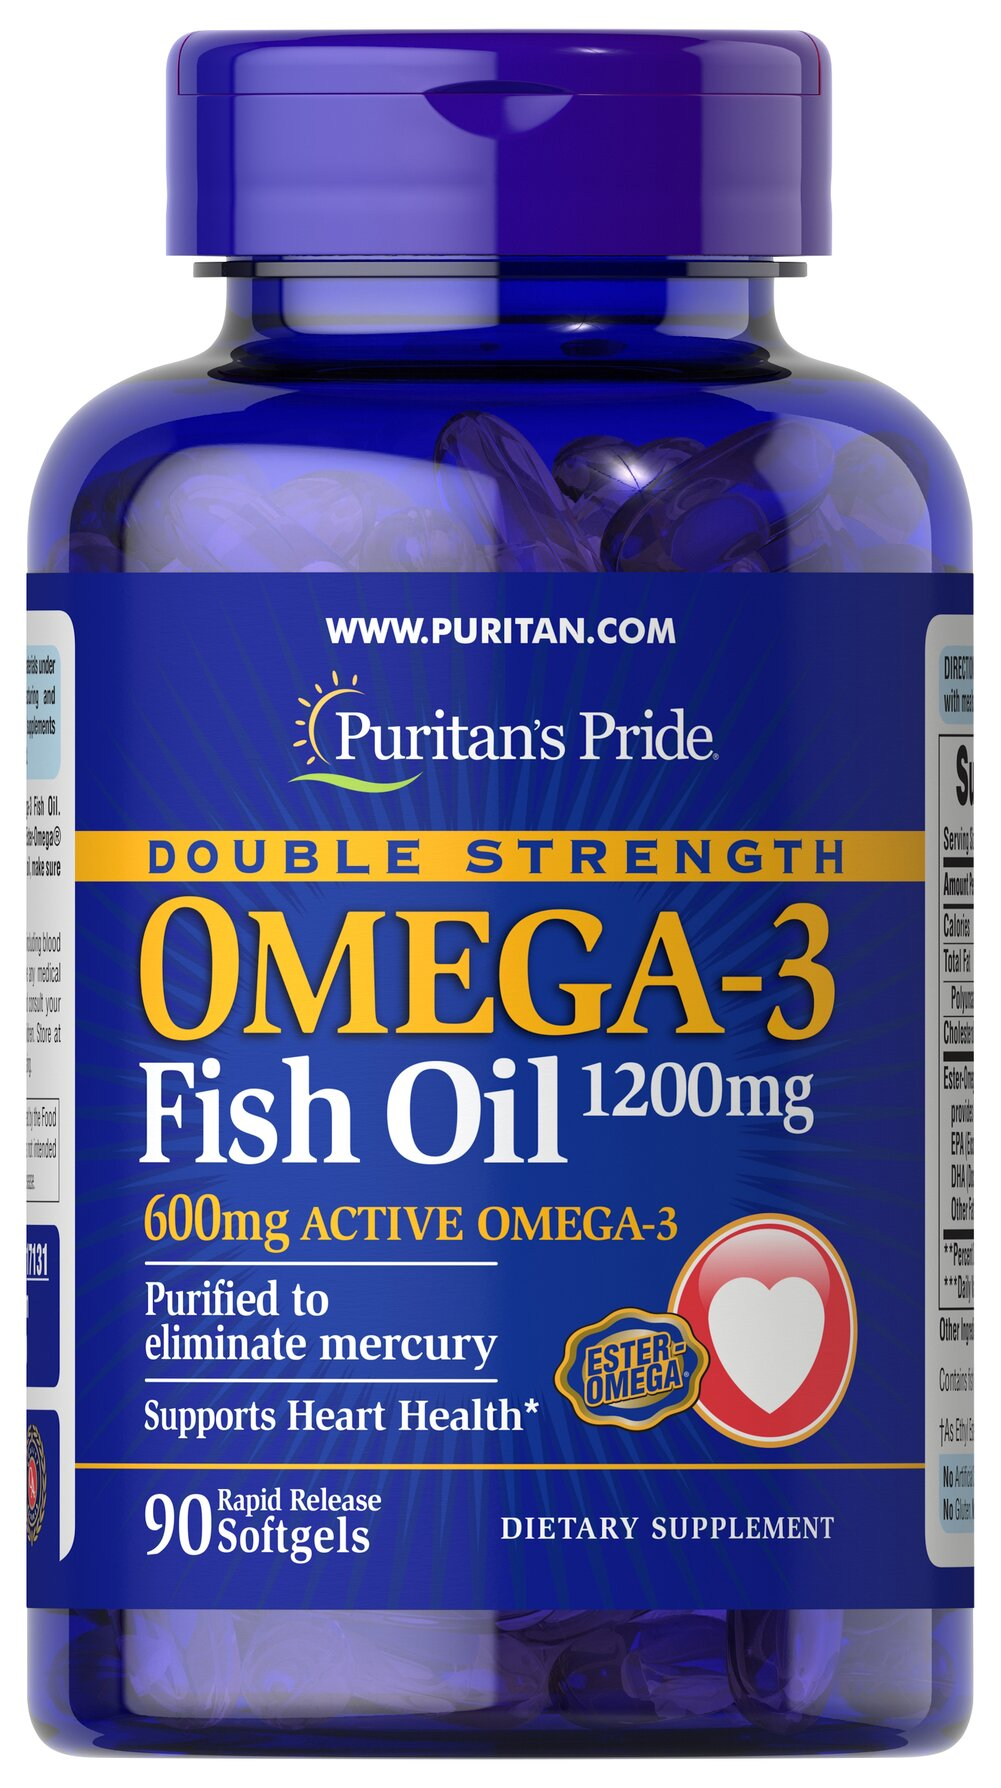 Double Strength Omega-3 Fish Oil 1200 mg/600 mg Omega-3 Thumbnail Alternate Bottle View